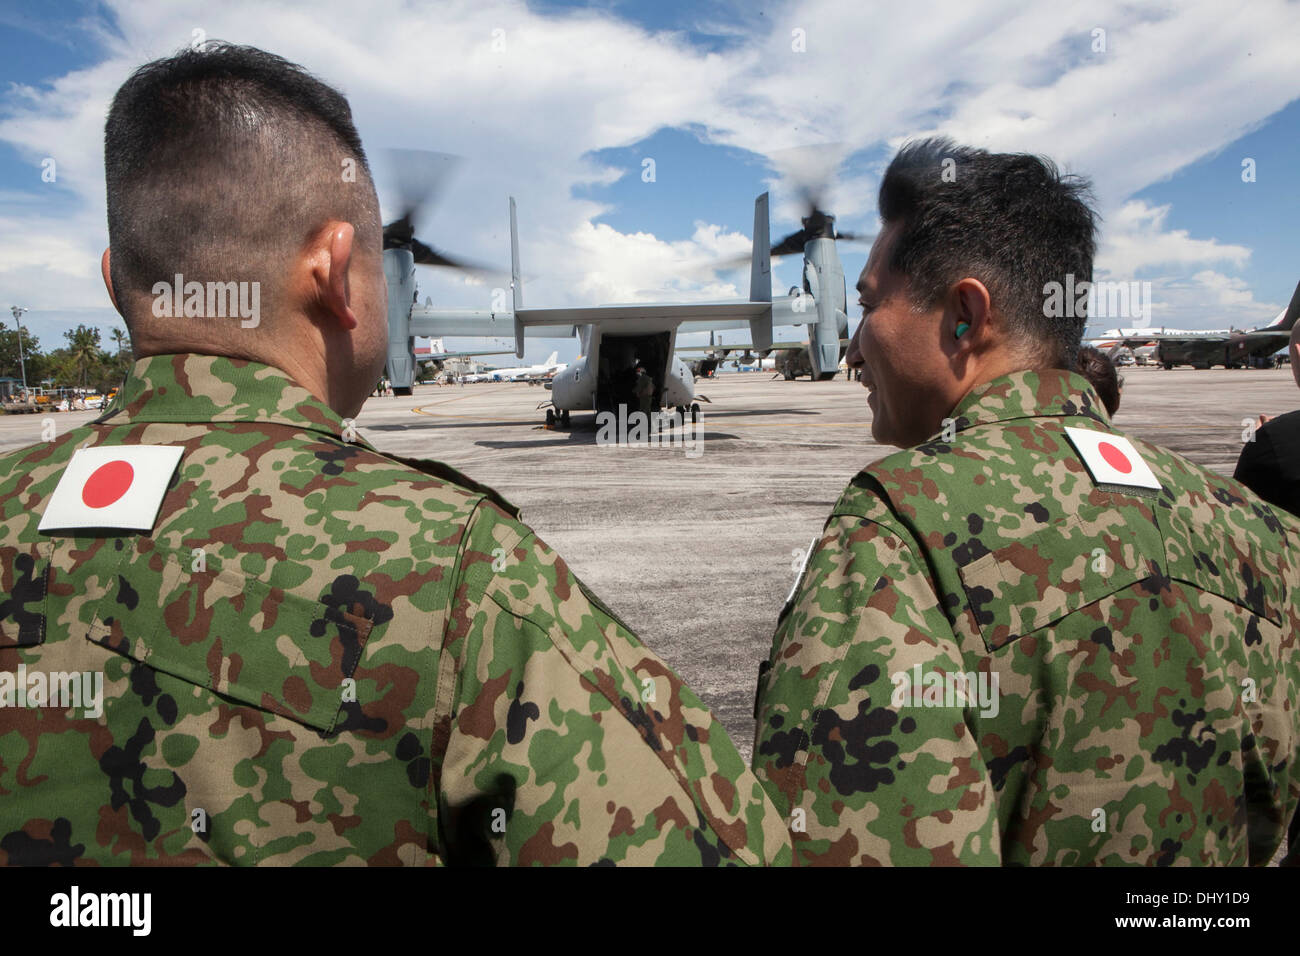 Japan Ground Self-Defense Force members wait to board an MV-22B Osprey aircraft Nov. 14 as part of Operation Damayan. The aircraft, JGSDF members and other relief personnel later landed in Tacloban to provide support to the Philippine government who is sp - Stock Image